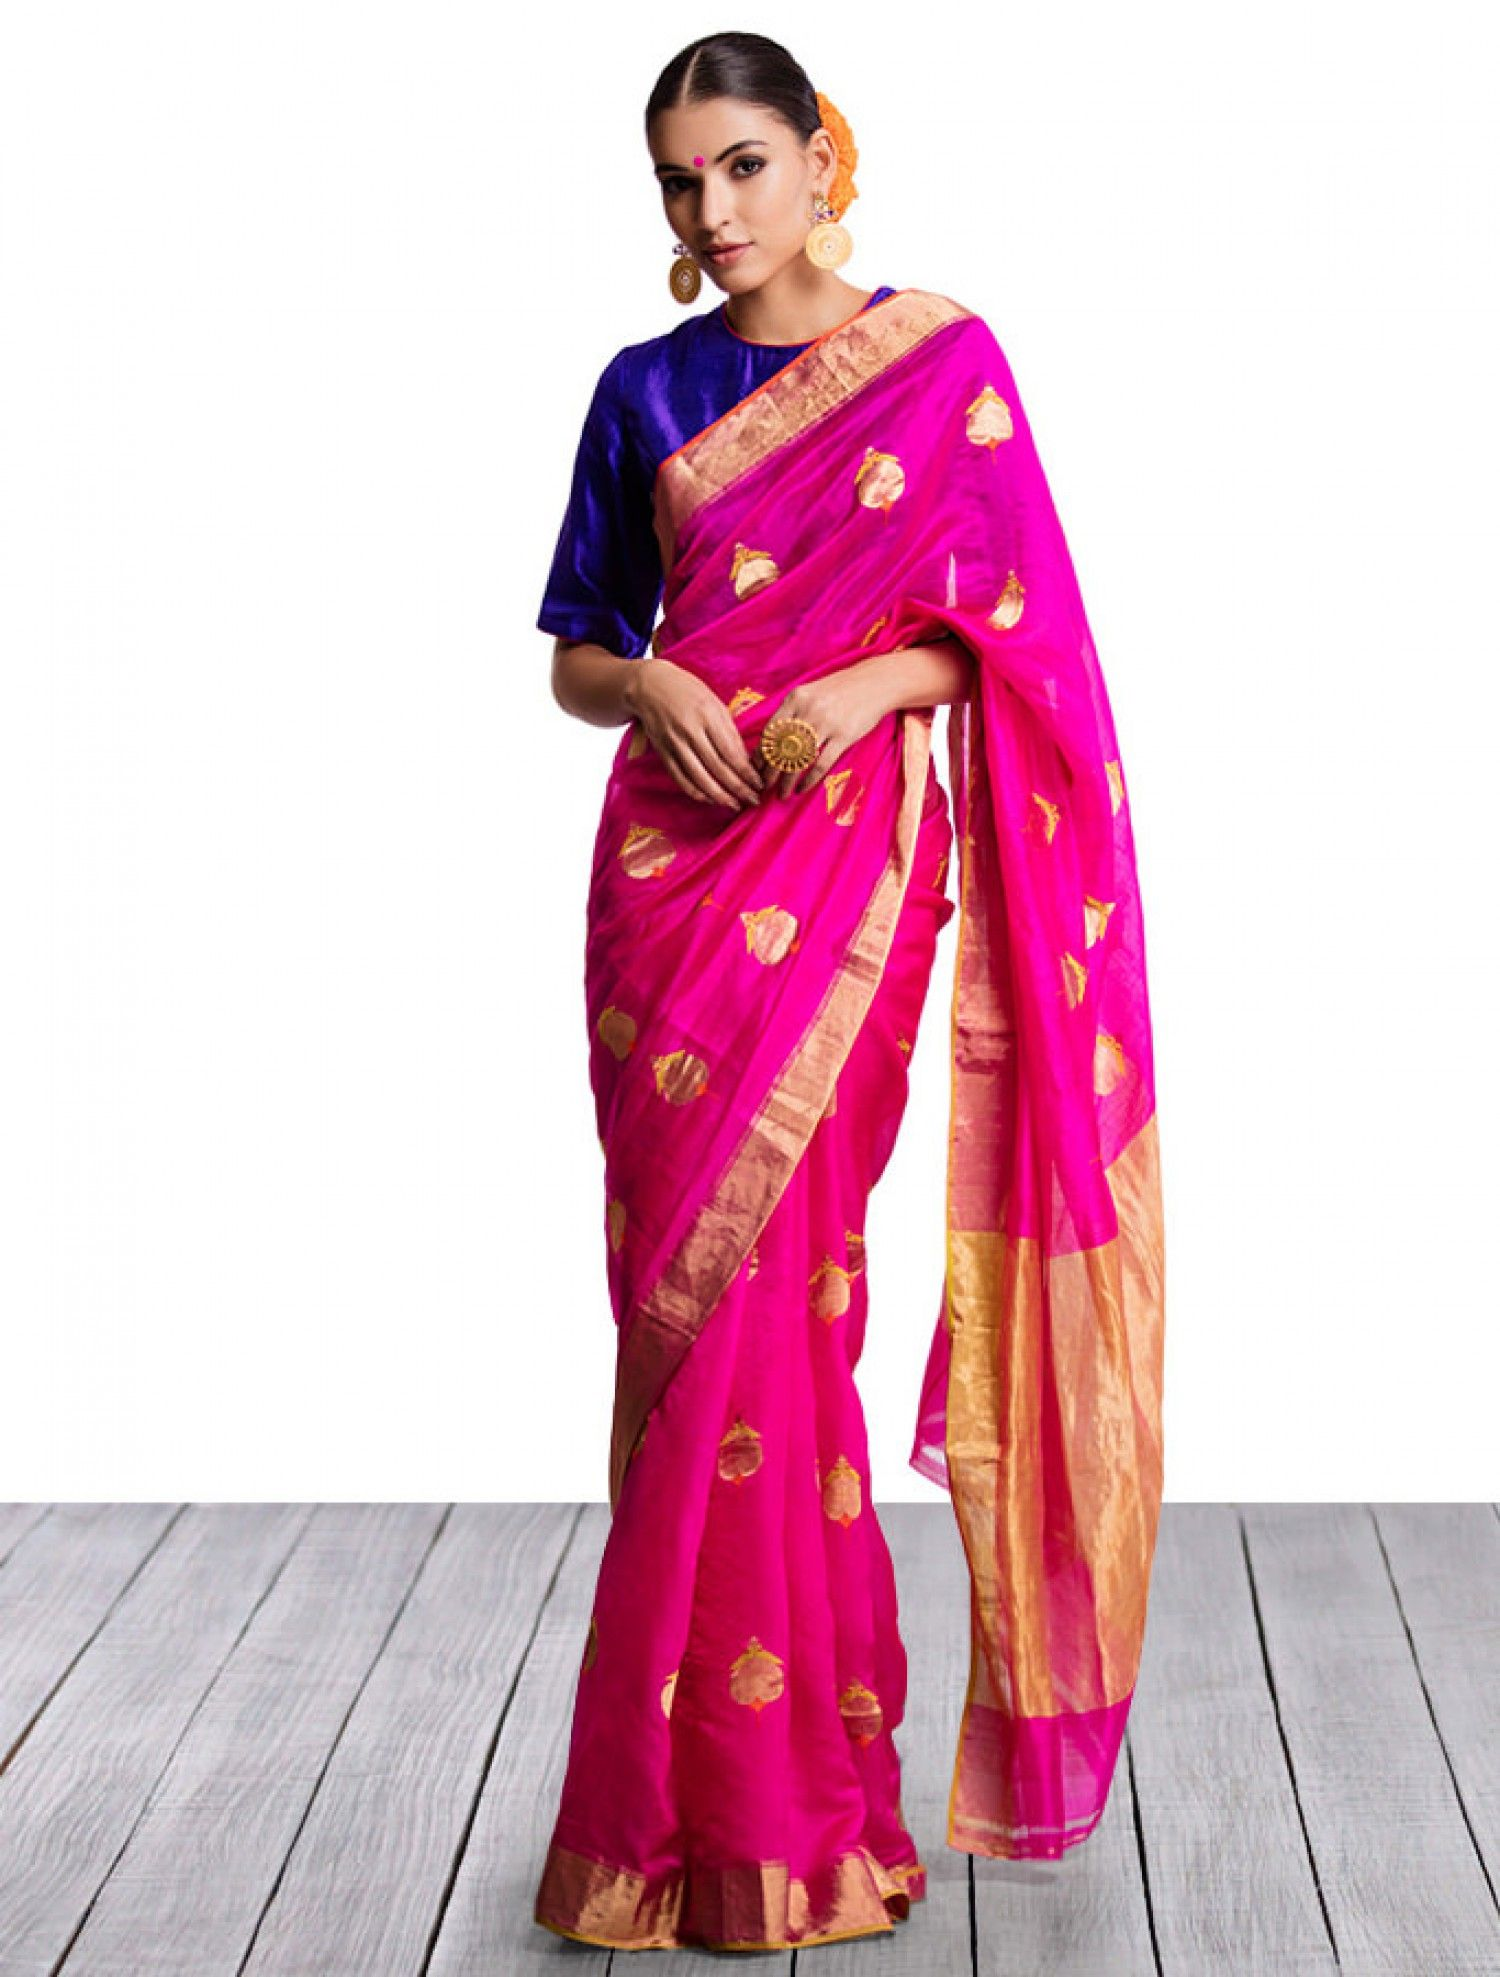 461fb8fdc Pink and gold silk saree with dark blue blouse. Indian fashion ...